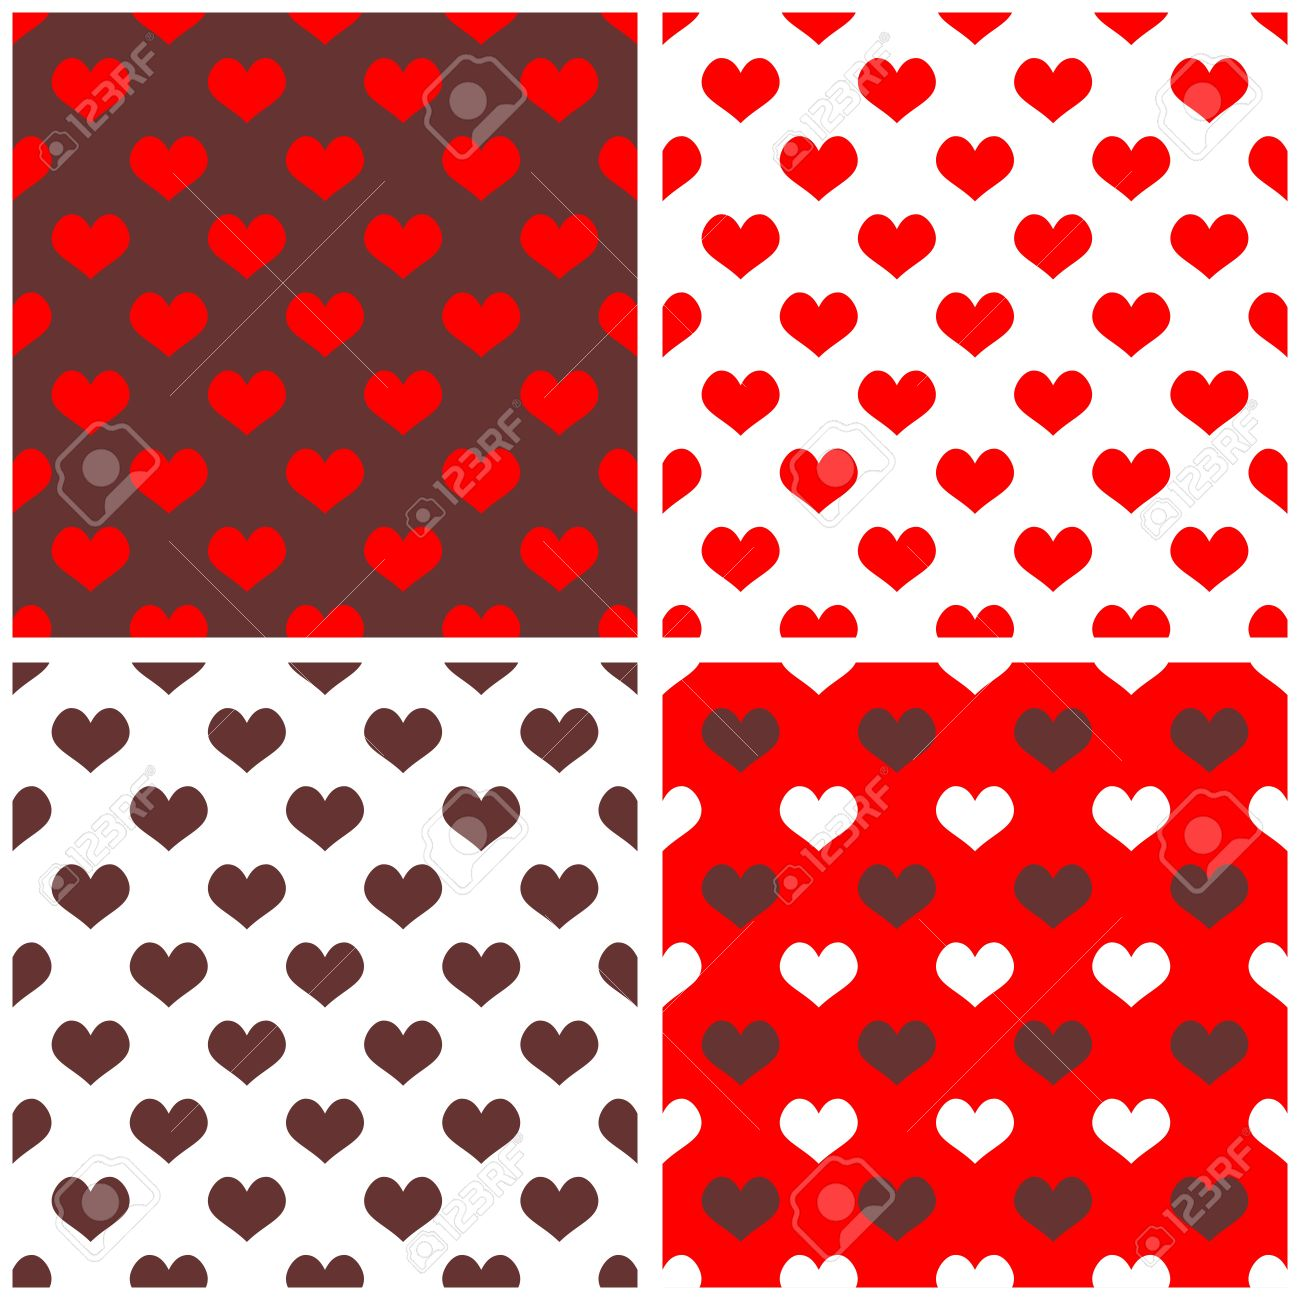 Seamless Vector Background Set With Hearts Full Of Love Pattern For Valentines Desktop Wallpaper Or